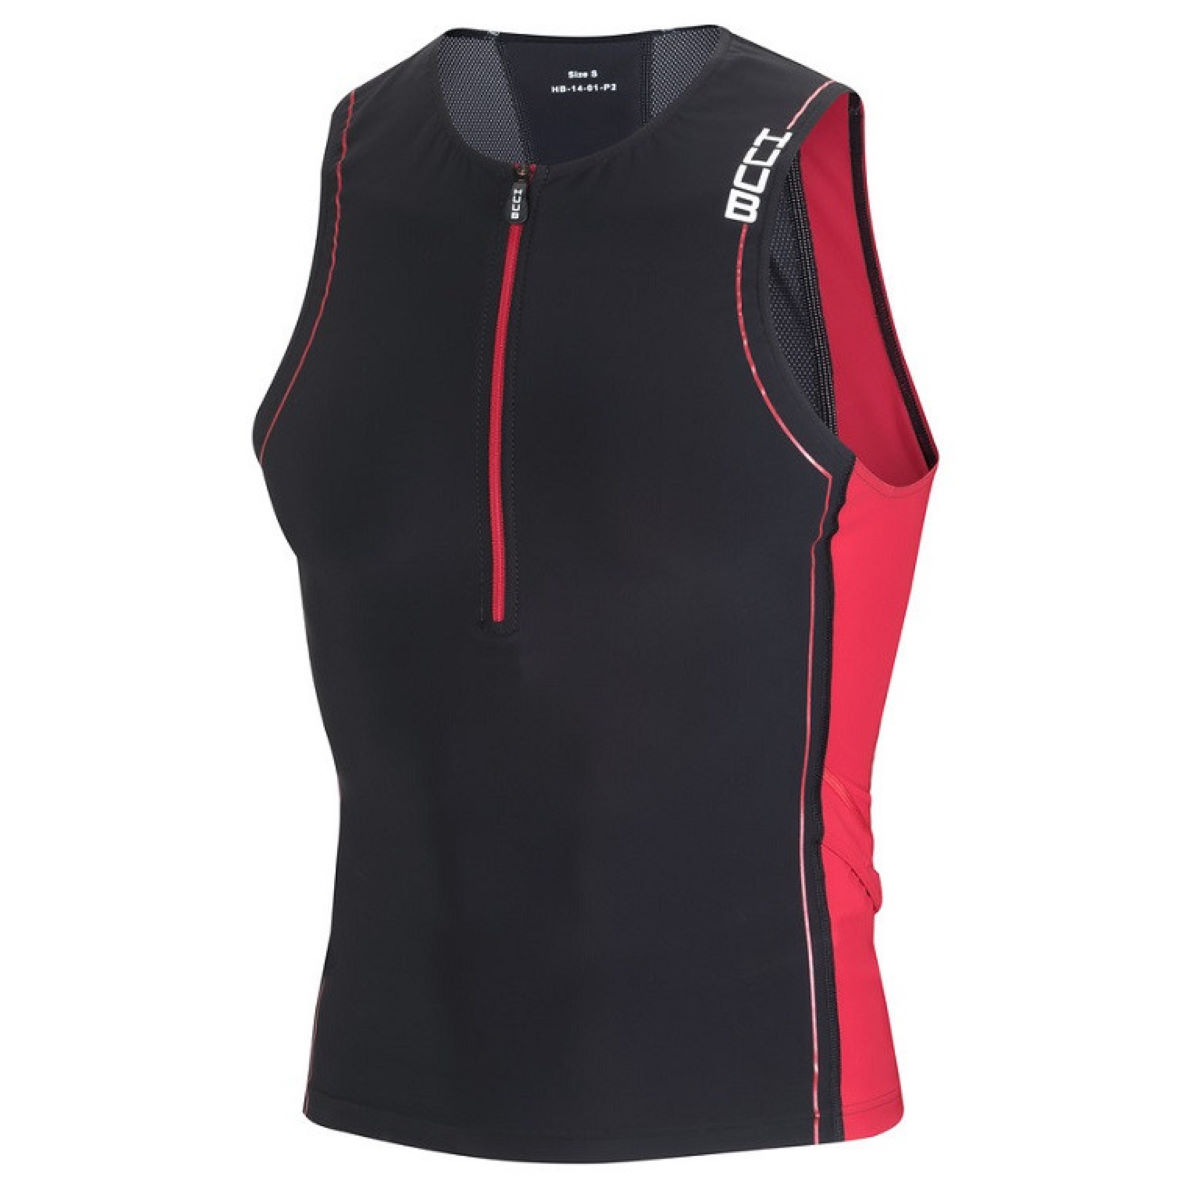 Haut de triathlon HUUB Core - S Noir/Rouge Hauts de triathlon